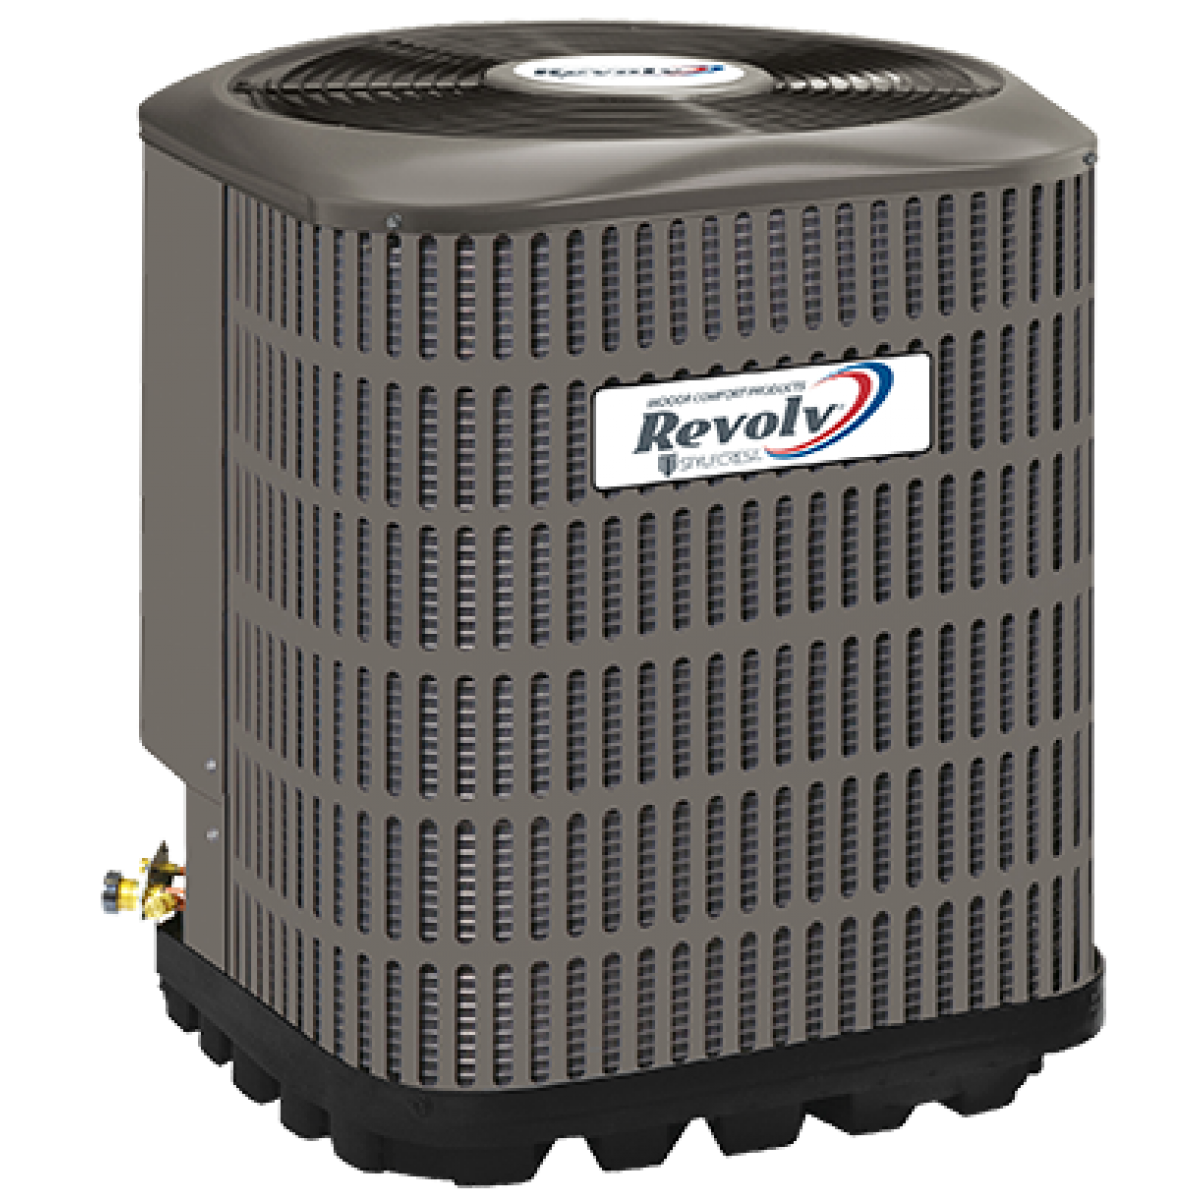 Revolv 4 0 Ton 14 Seer Electric Heat System For The Mobile